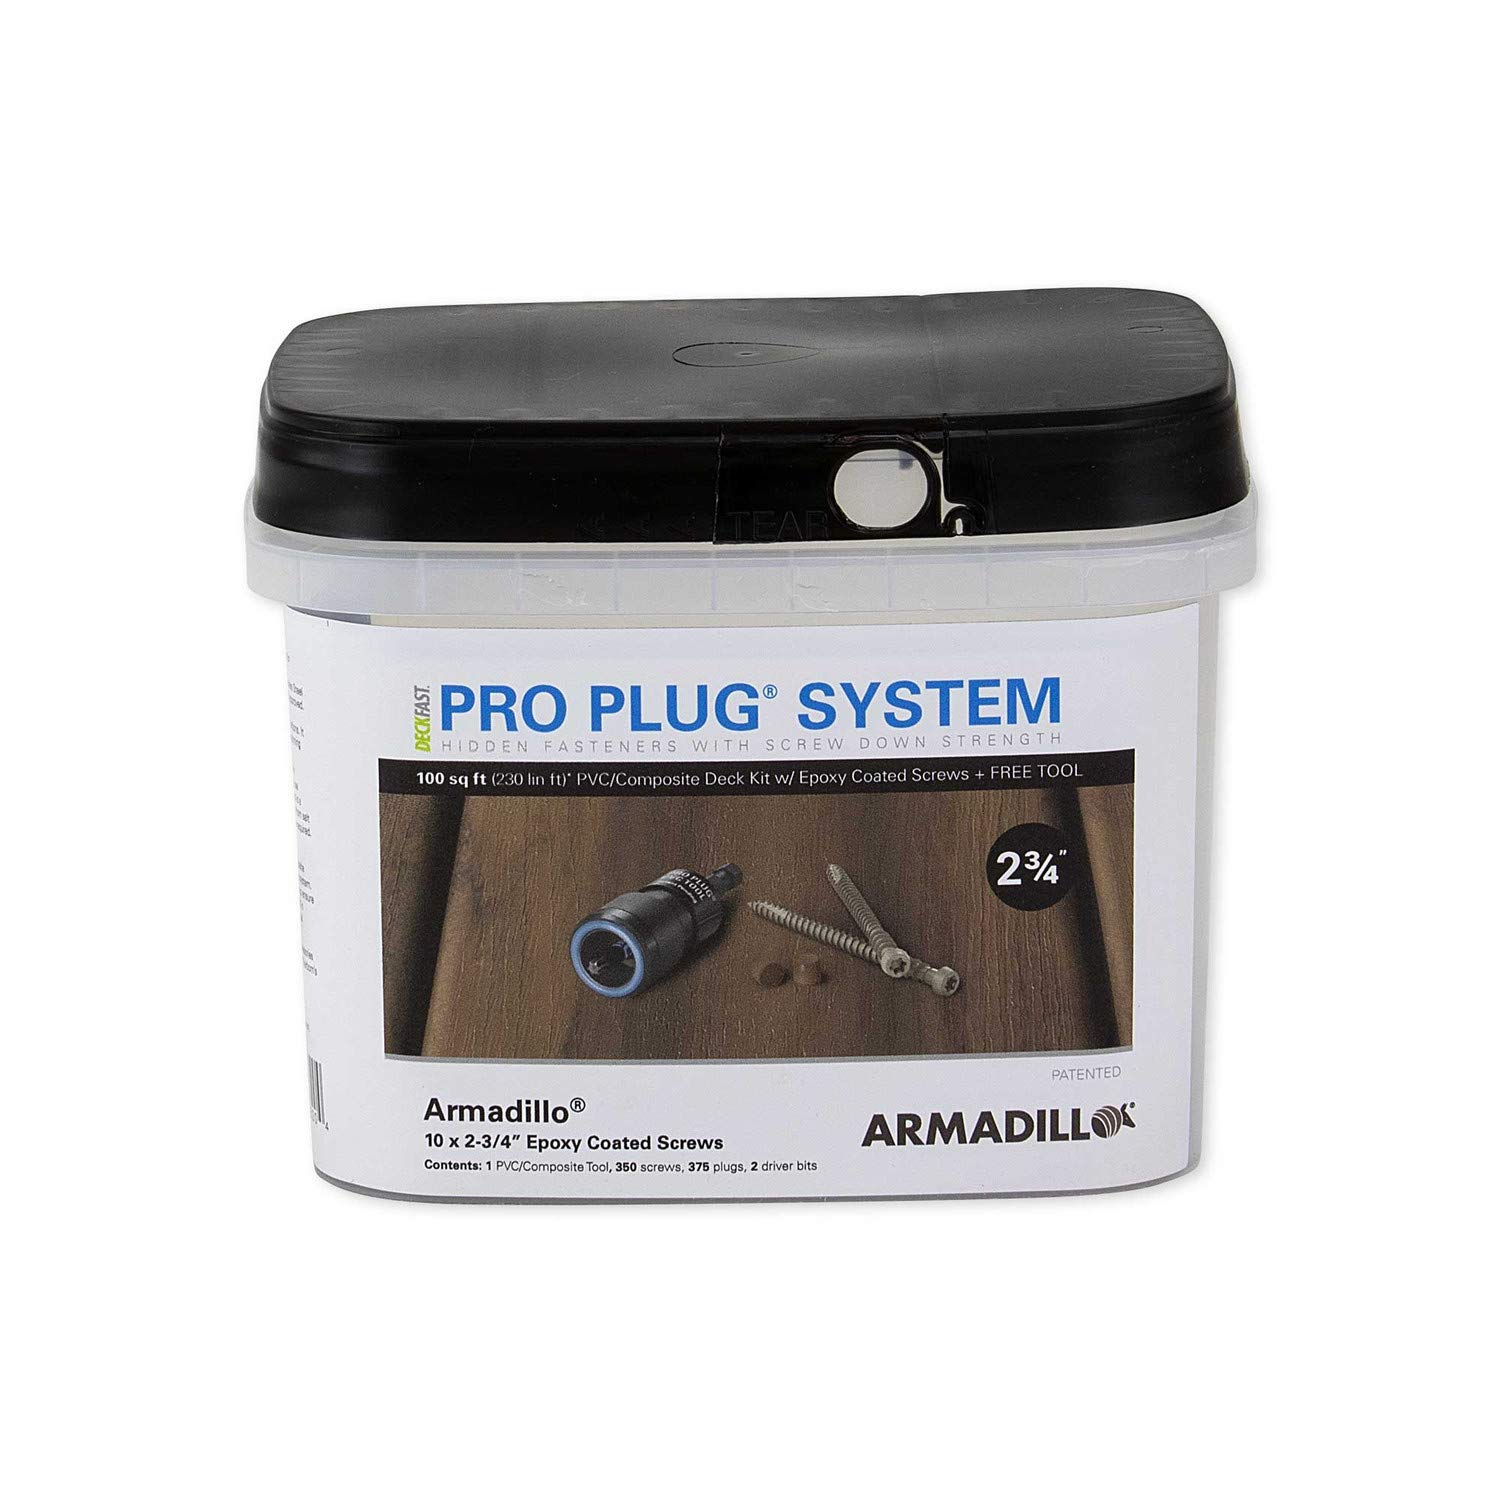 Armadillo Smoke Starborn Pro Plug System for Armadillo Decking Epoxy Finish #10 x 2-3//4 100 Square Feet